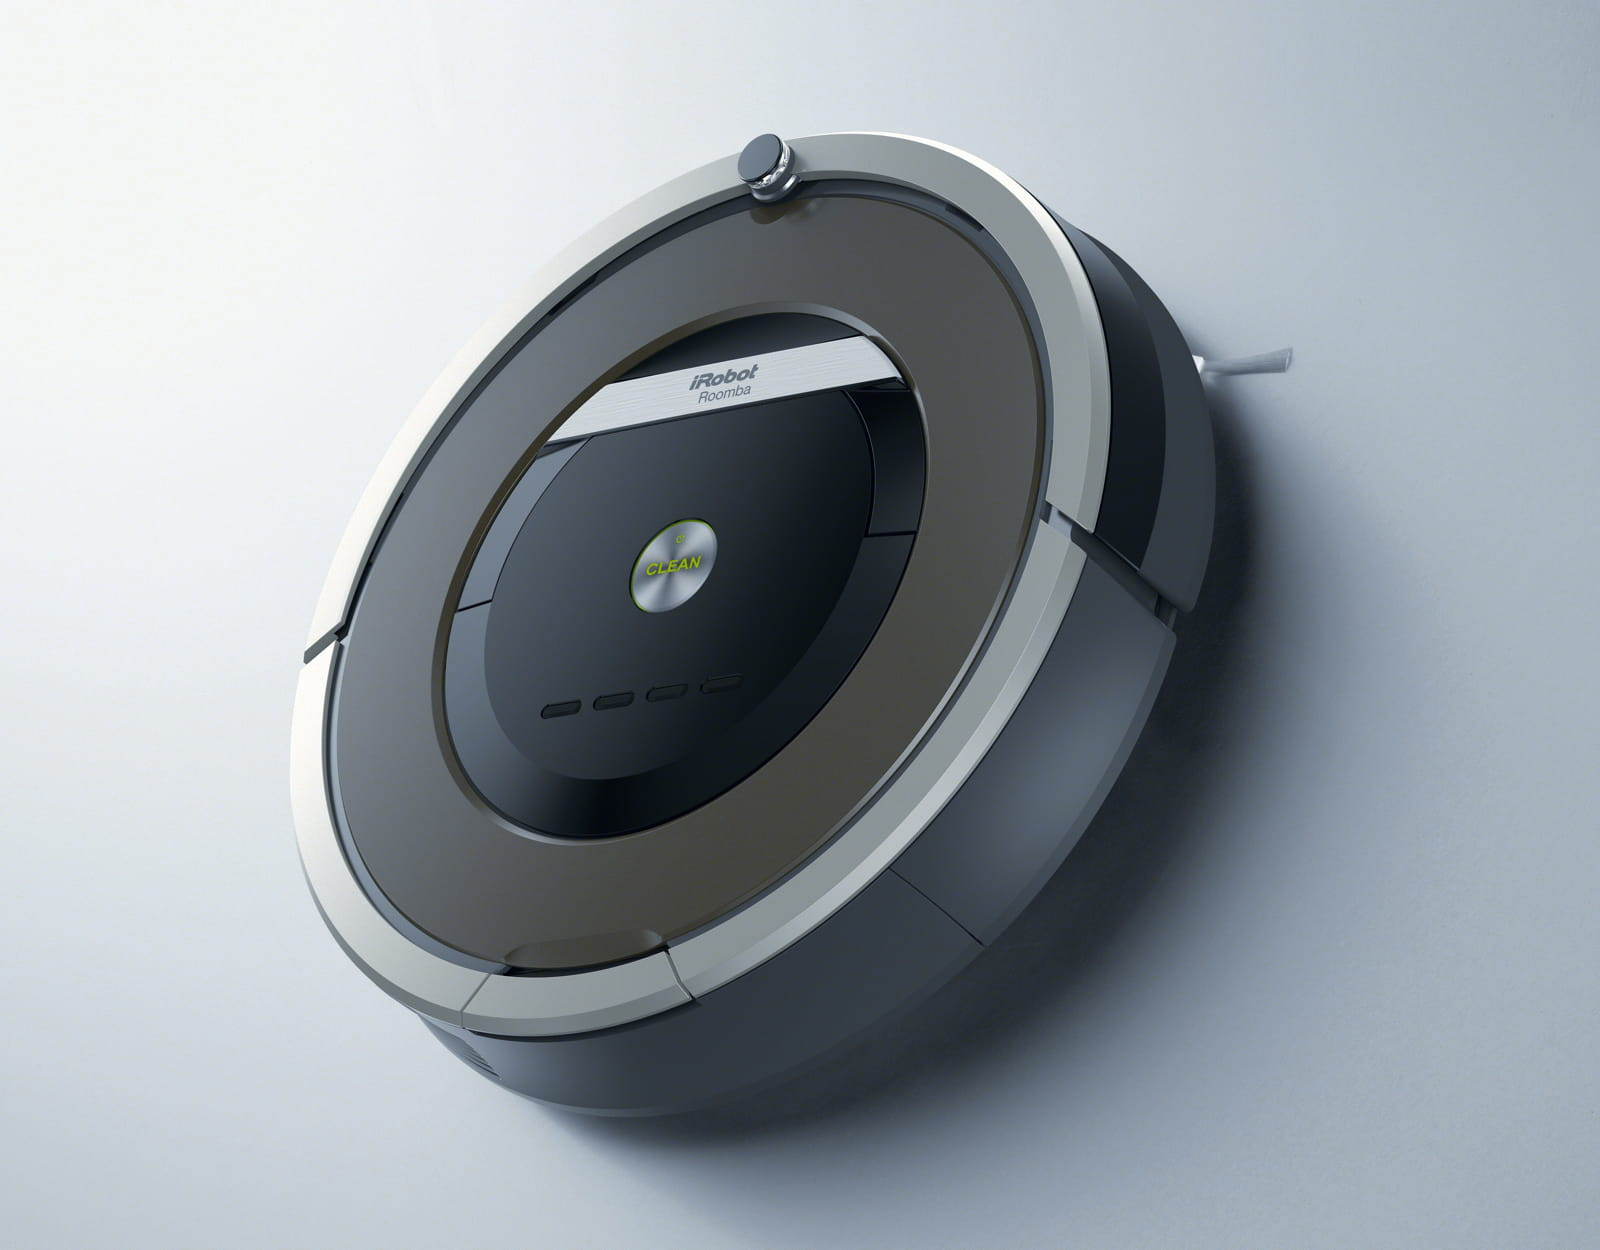 roomba le robot aspirateur qui nettoie tout seul votre. Black Bedroom Furniture Sets. Home Design Ideas